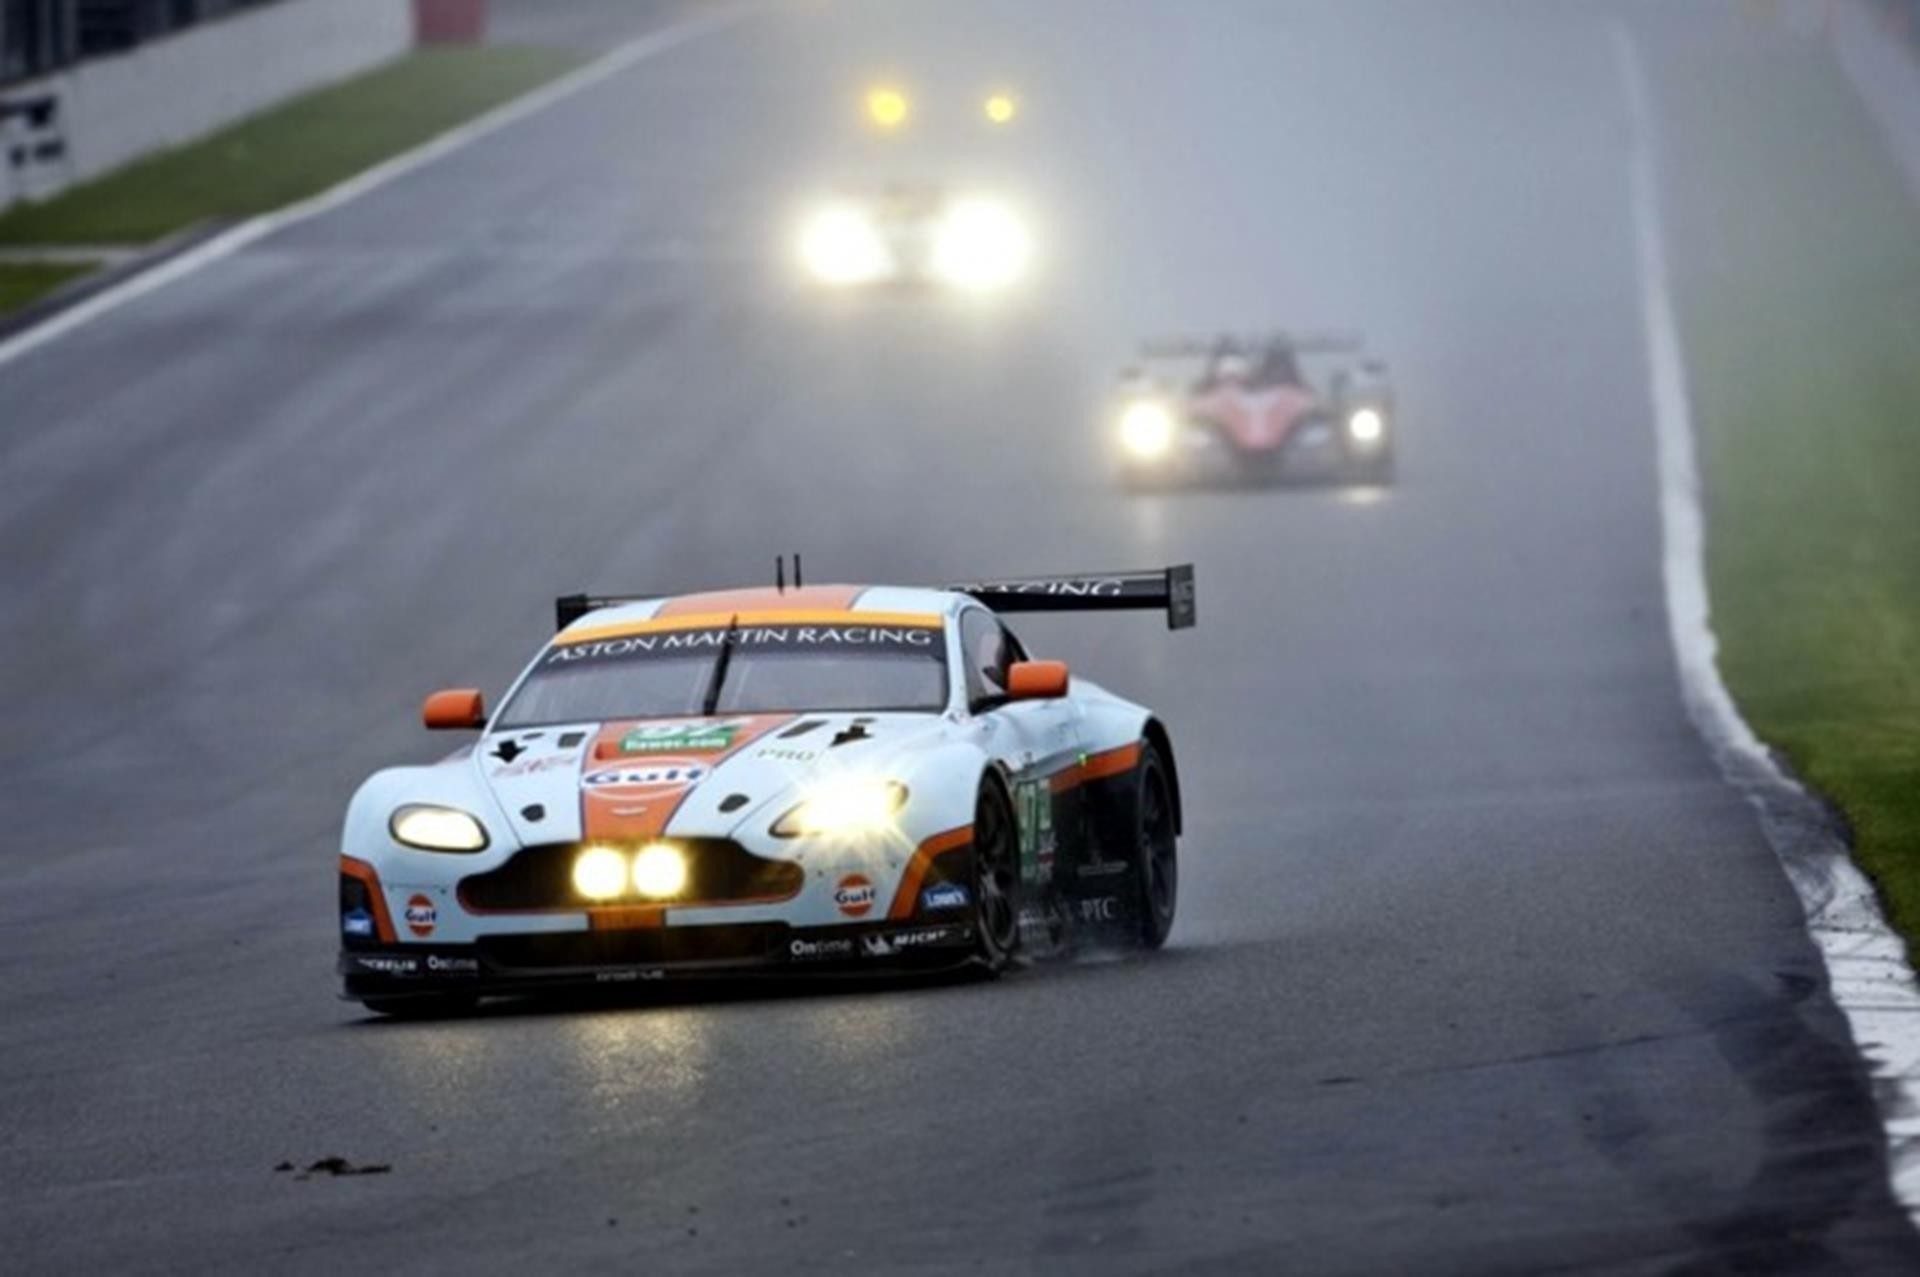 Aston Martin Racing Spa Francorchamps